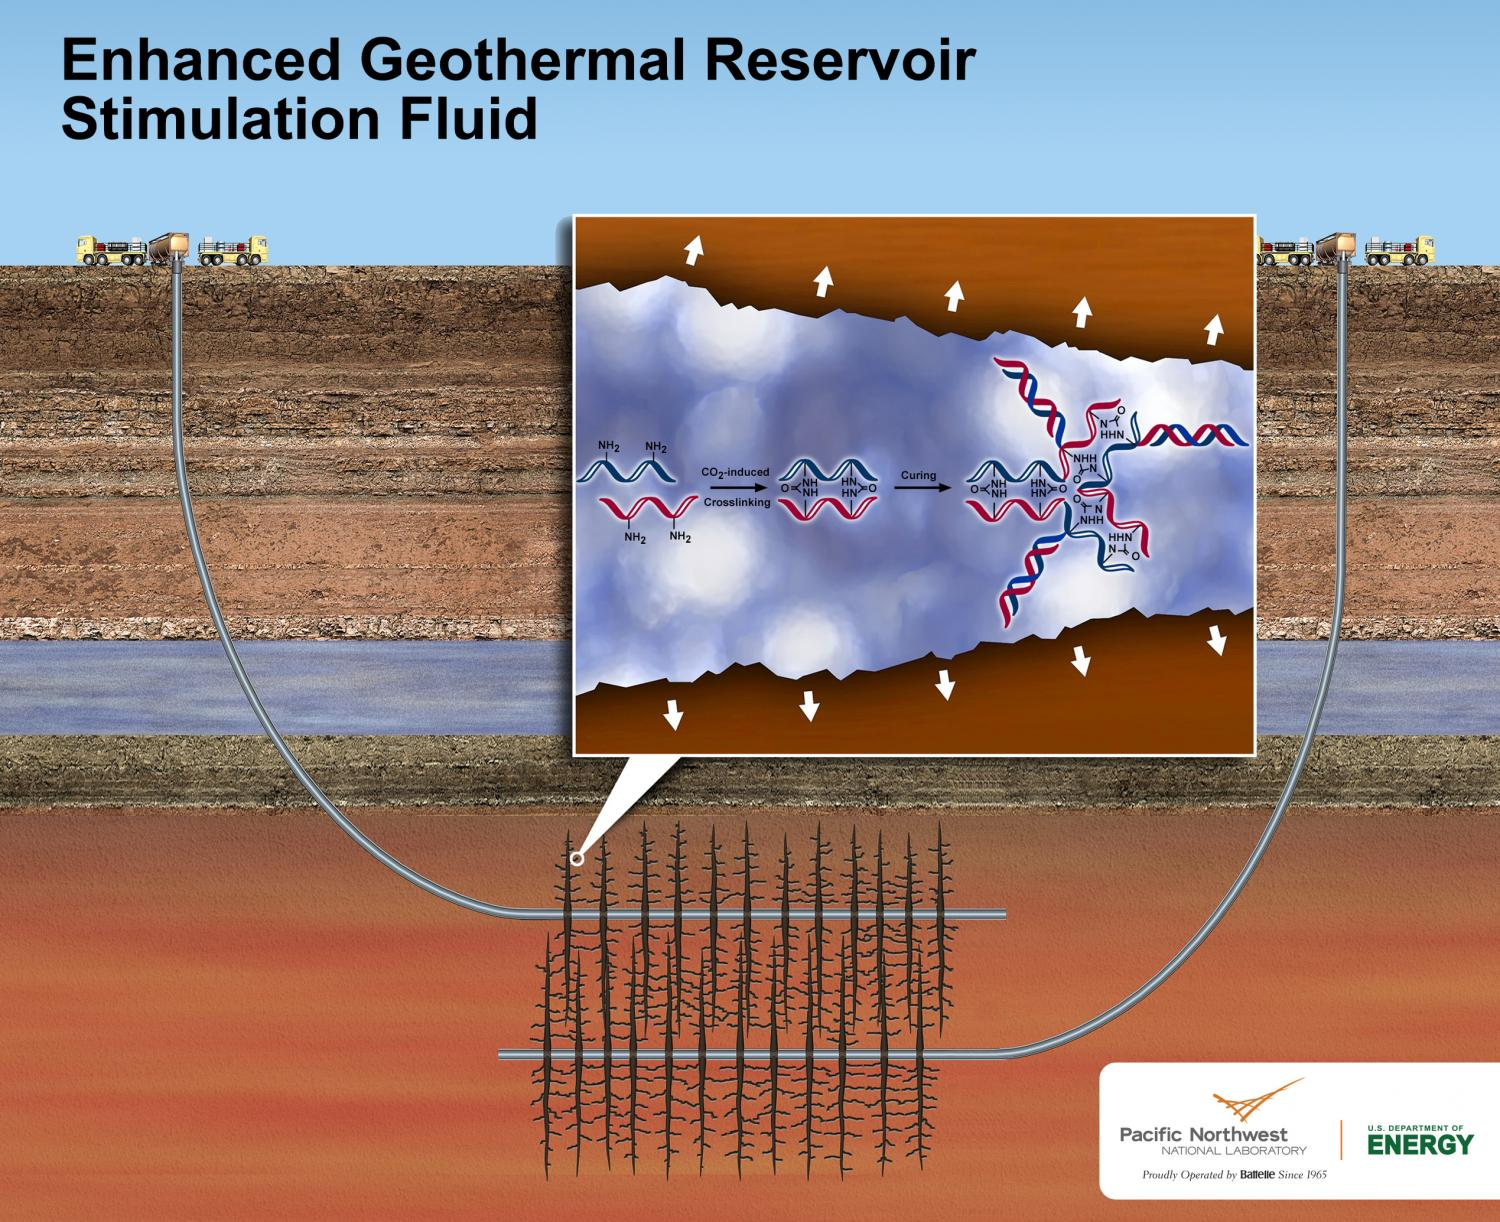 laboratory s new geothermal stimulation fluid could make geothermal ...